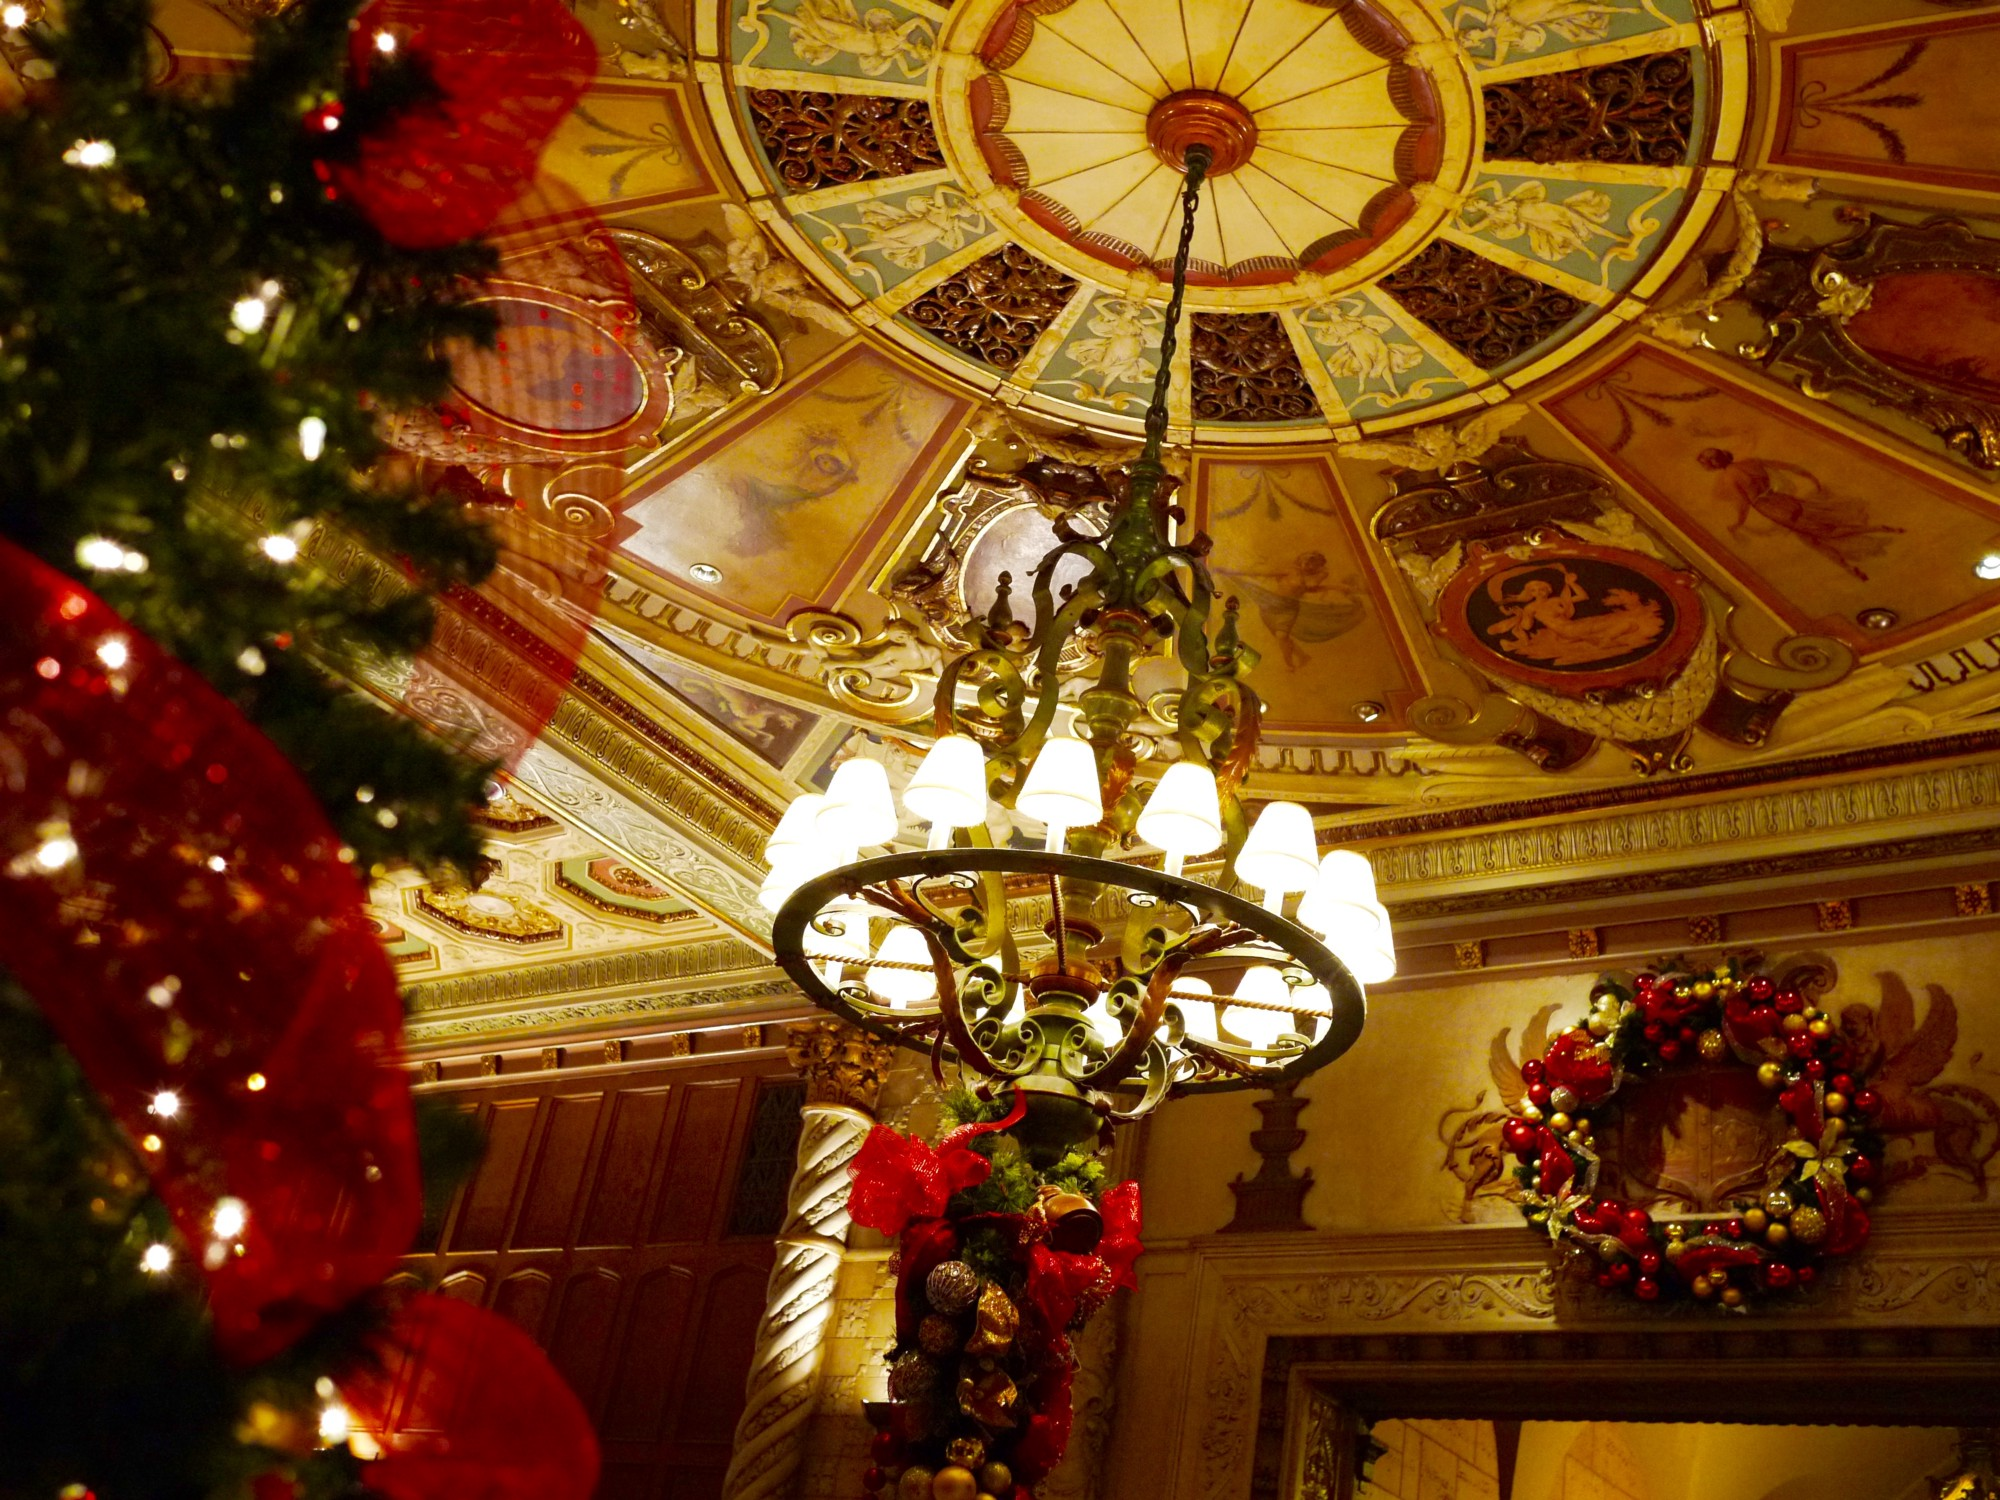 decorations inside the millennium biltmore hotel photo by douglas de wet